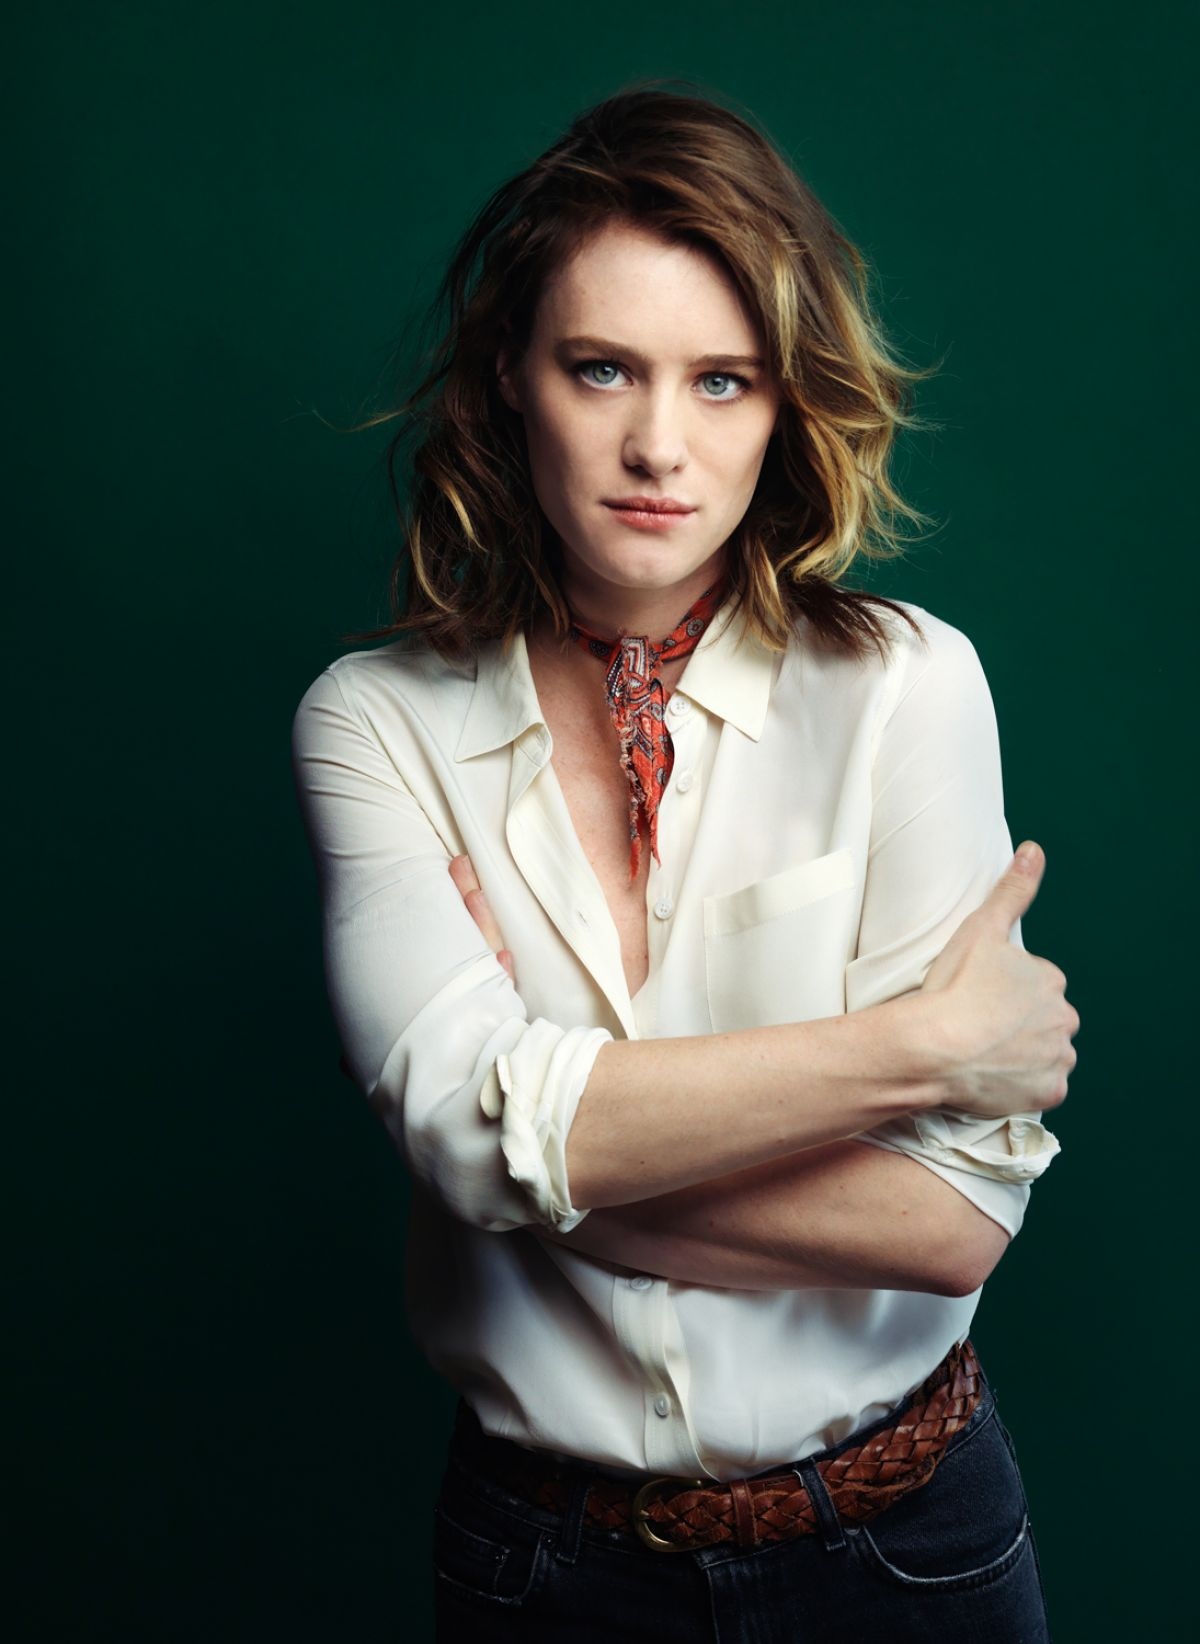 MACKENZIE DAVIS for New York Observer, November 2016